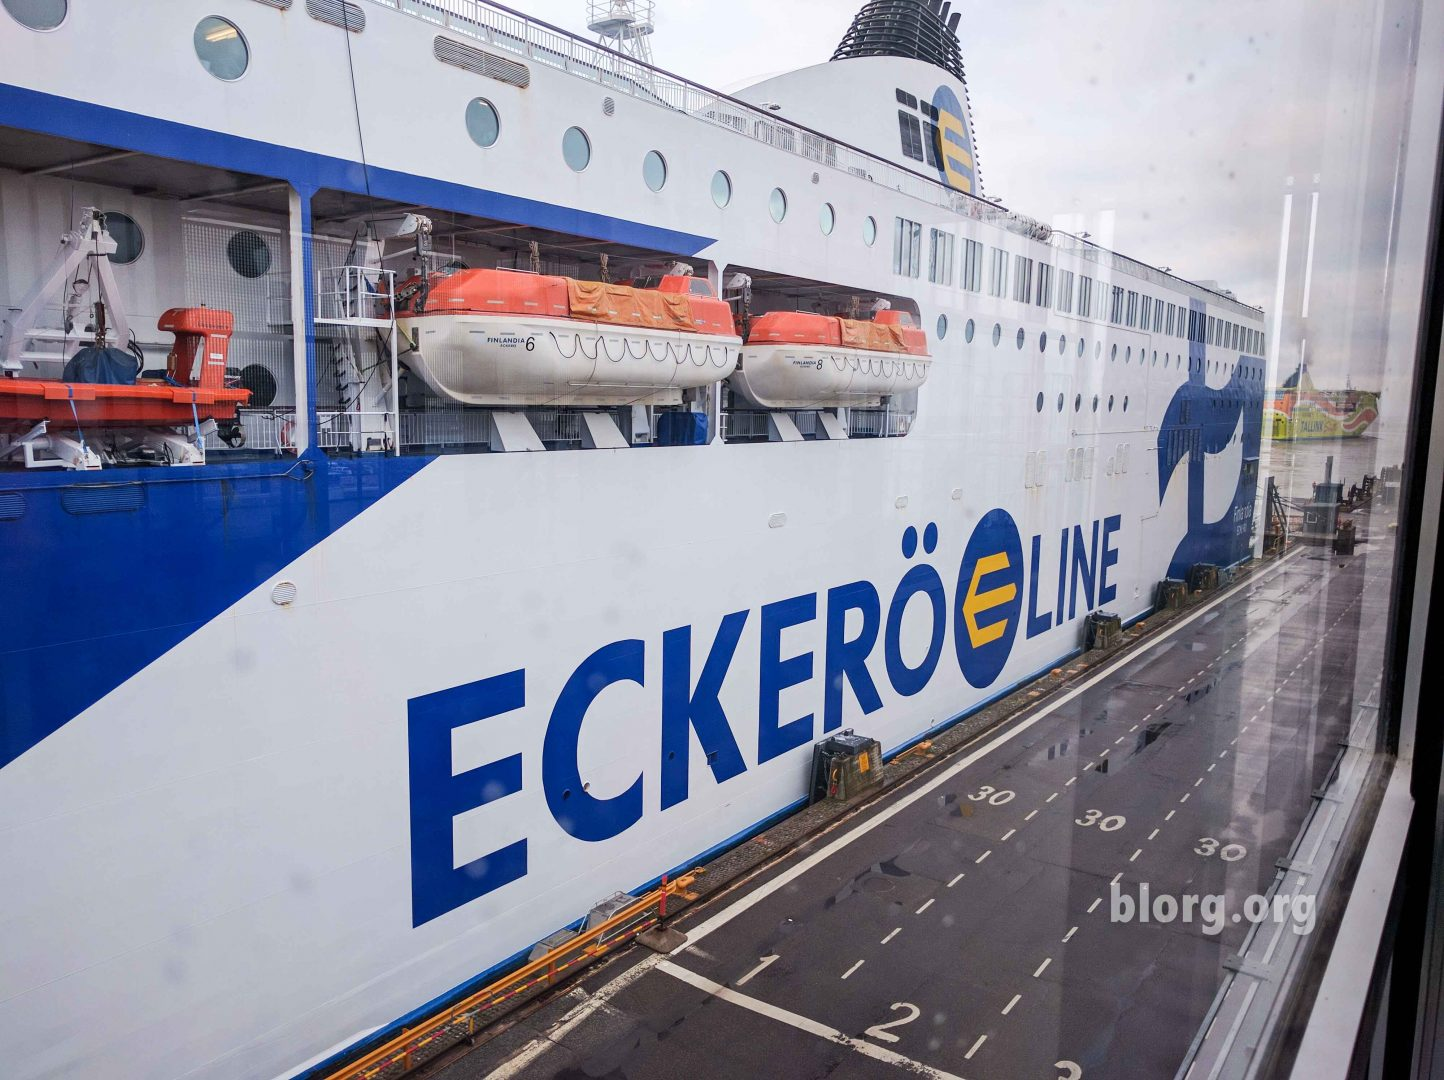 Helsinki to Tallinn Ferry Review – Eckero